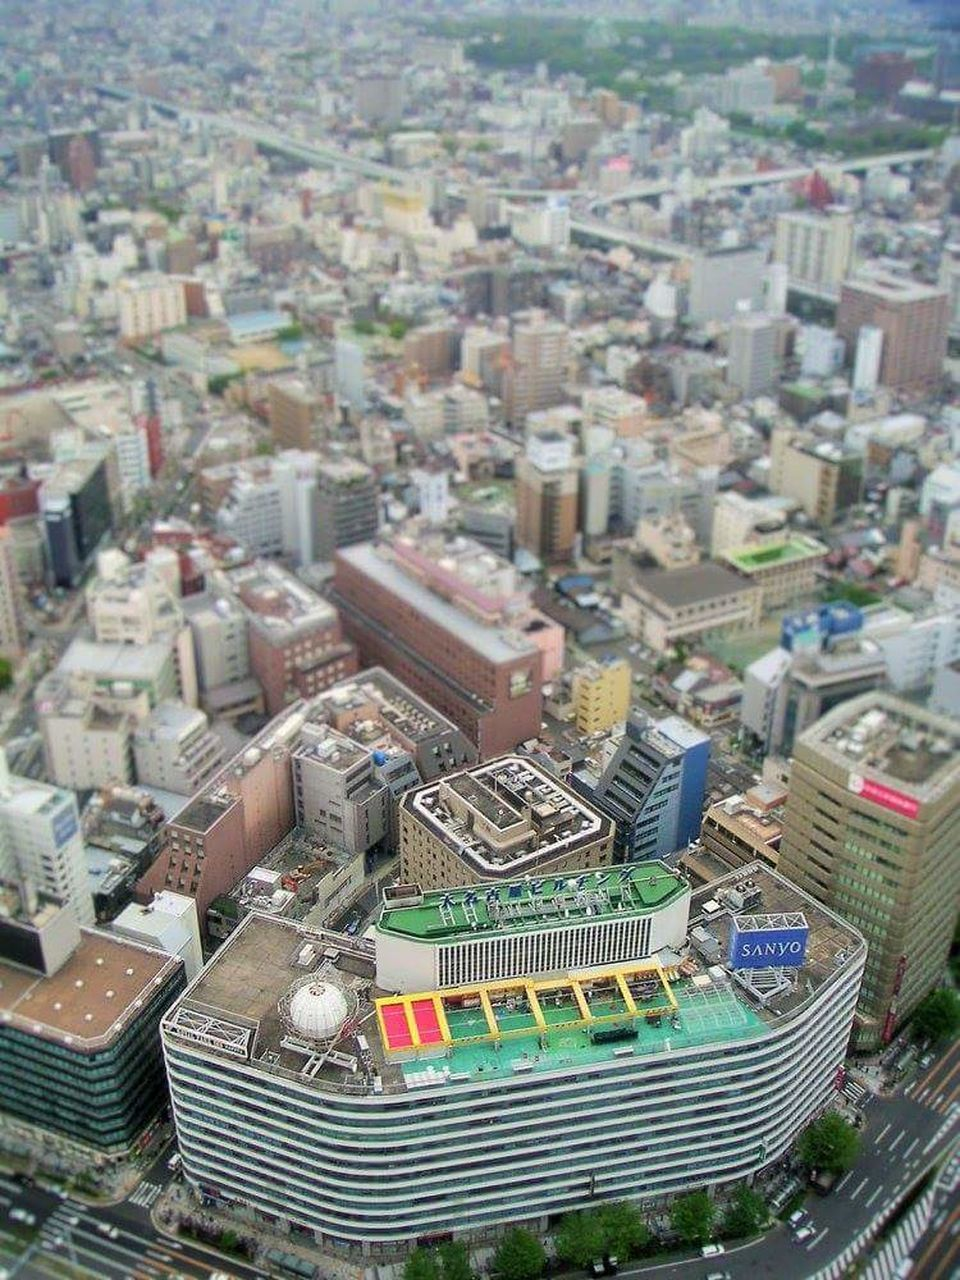 cityscape, high angle view, city, architecture, building exterior, skyscraper, no people, aerial view, day, outdoors, travel destinations, tilt-shift, modern, urban skyline